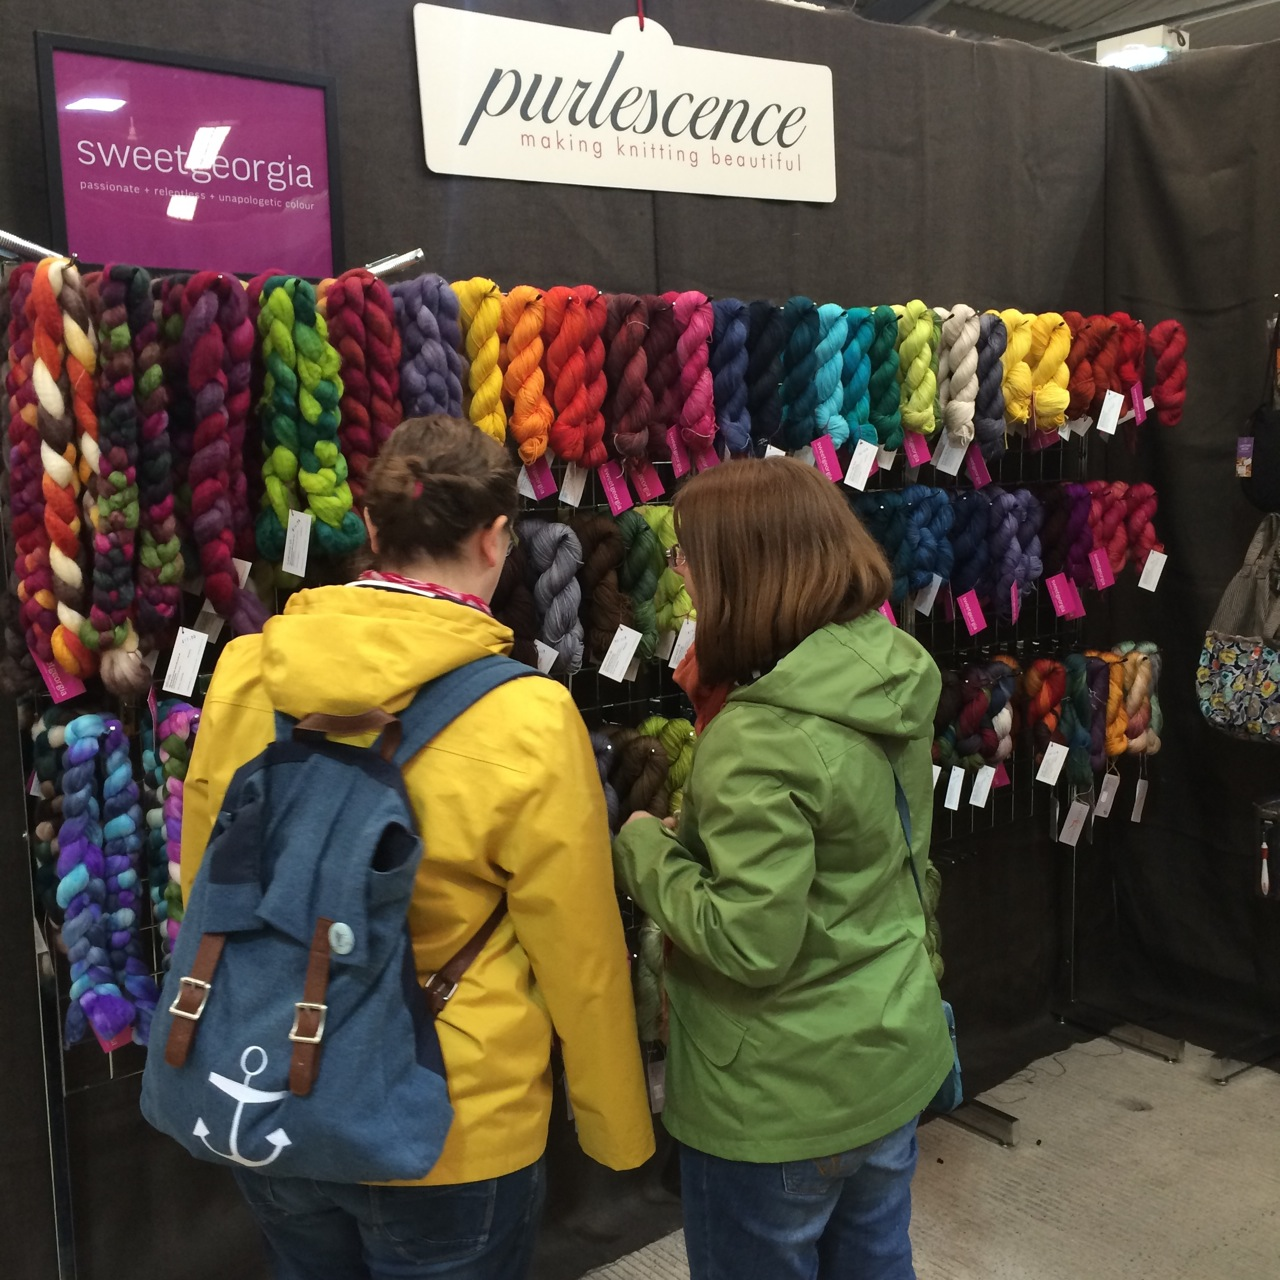 The rainbow of SweetGeorgia colour was proudly on display at the Purlescence booth.